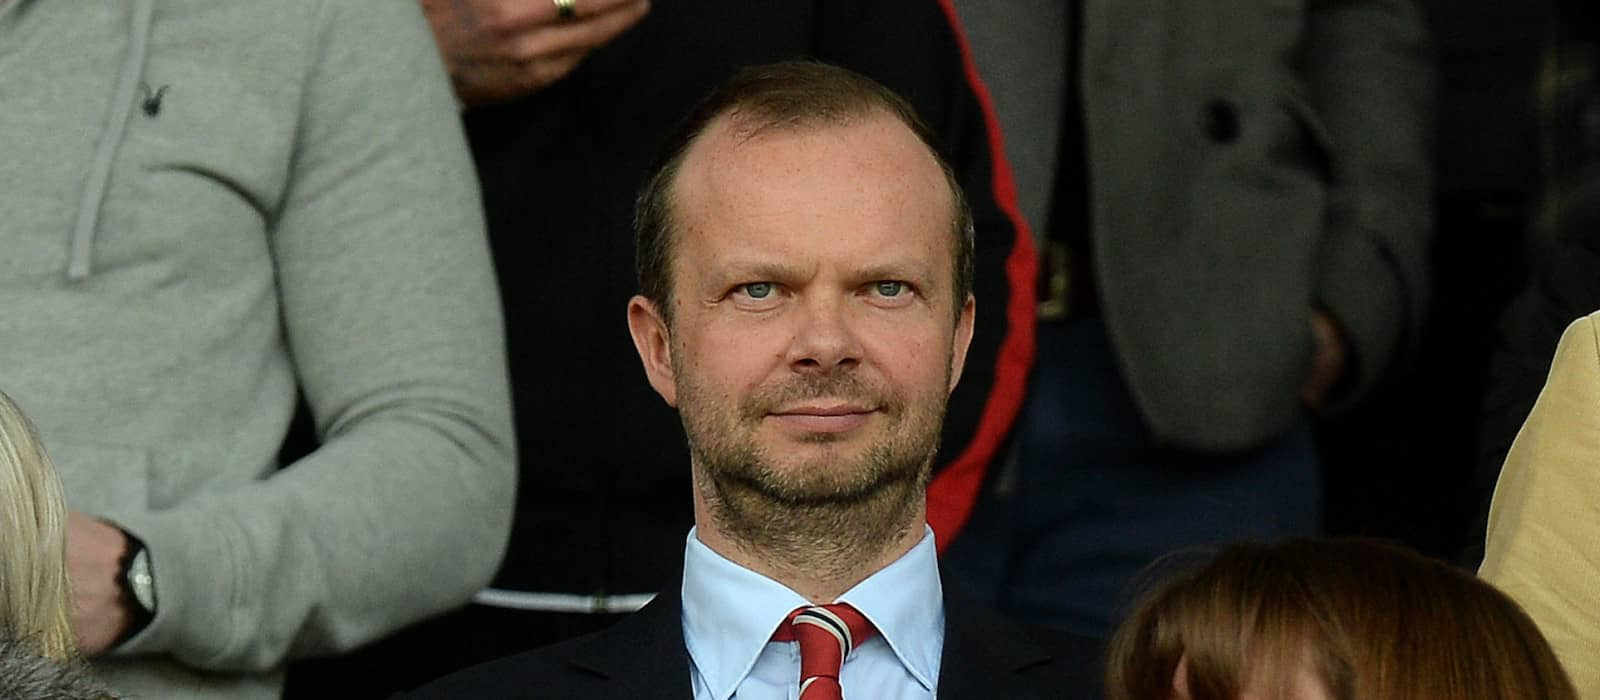 Another failed transfer bid for Manchester United: how much can fans take?